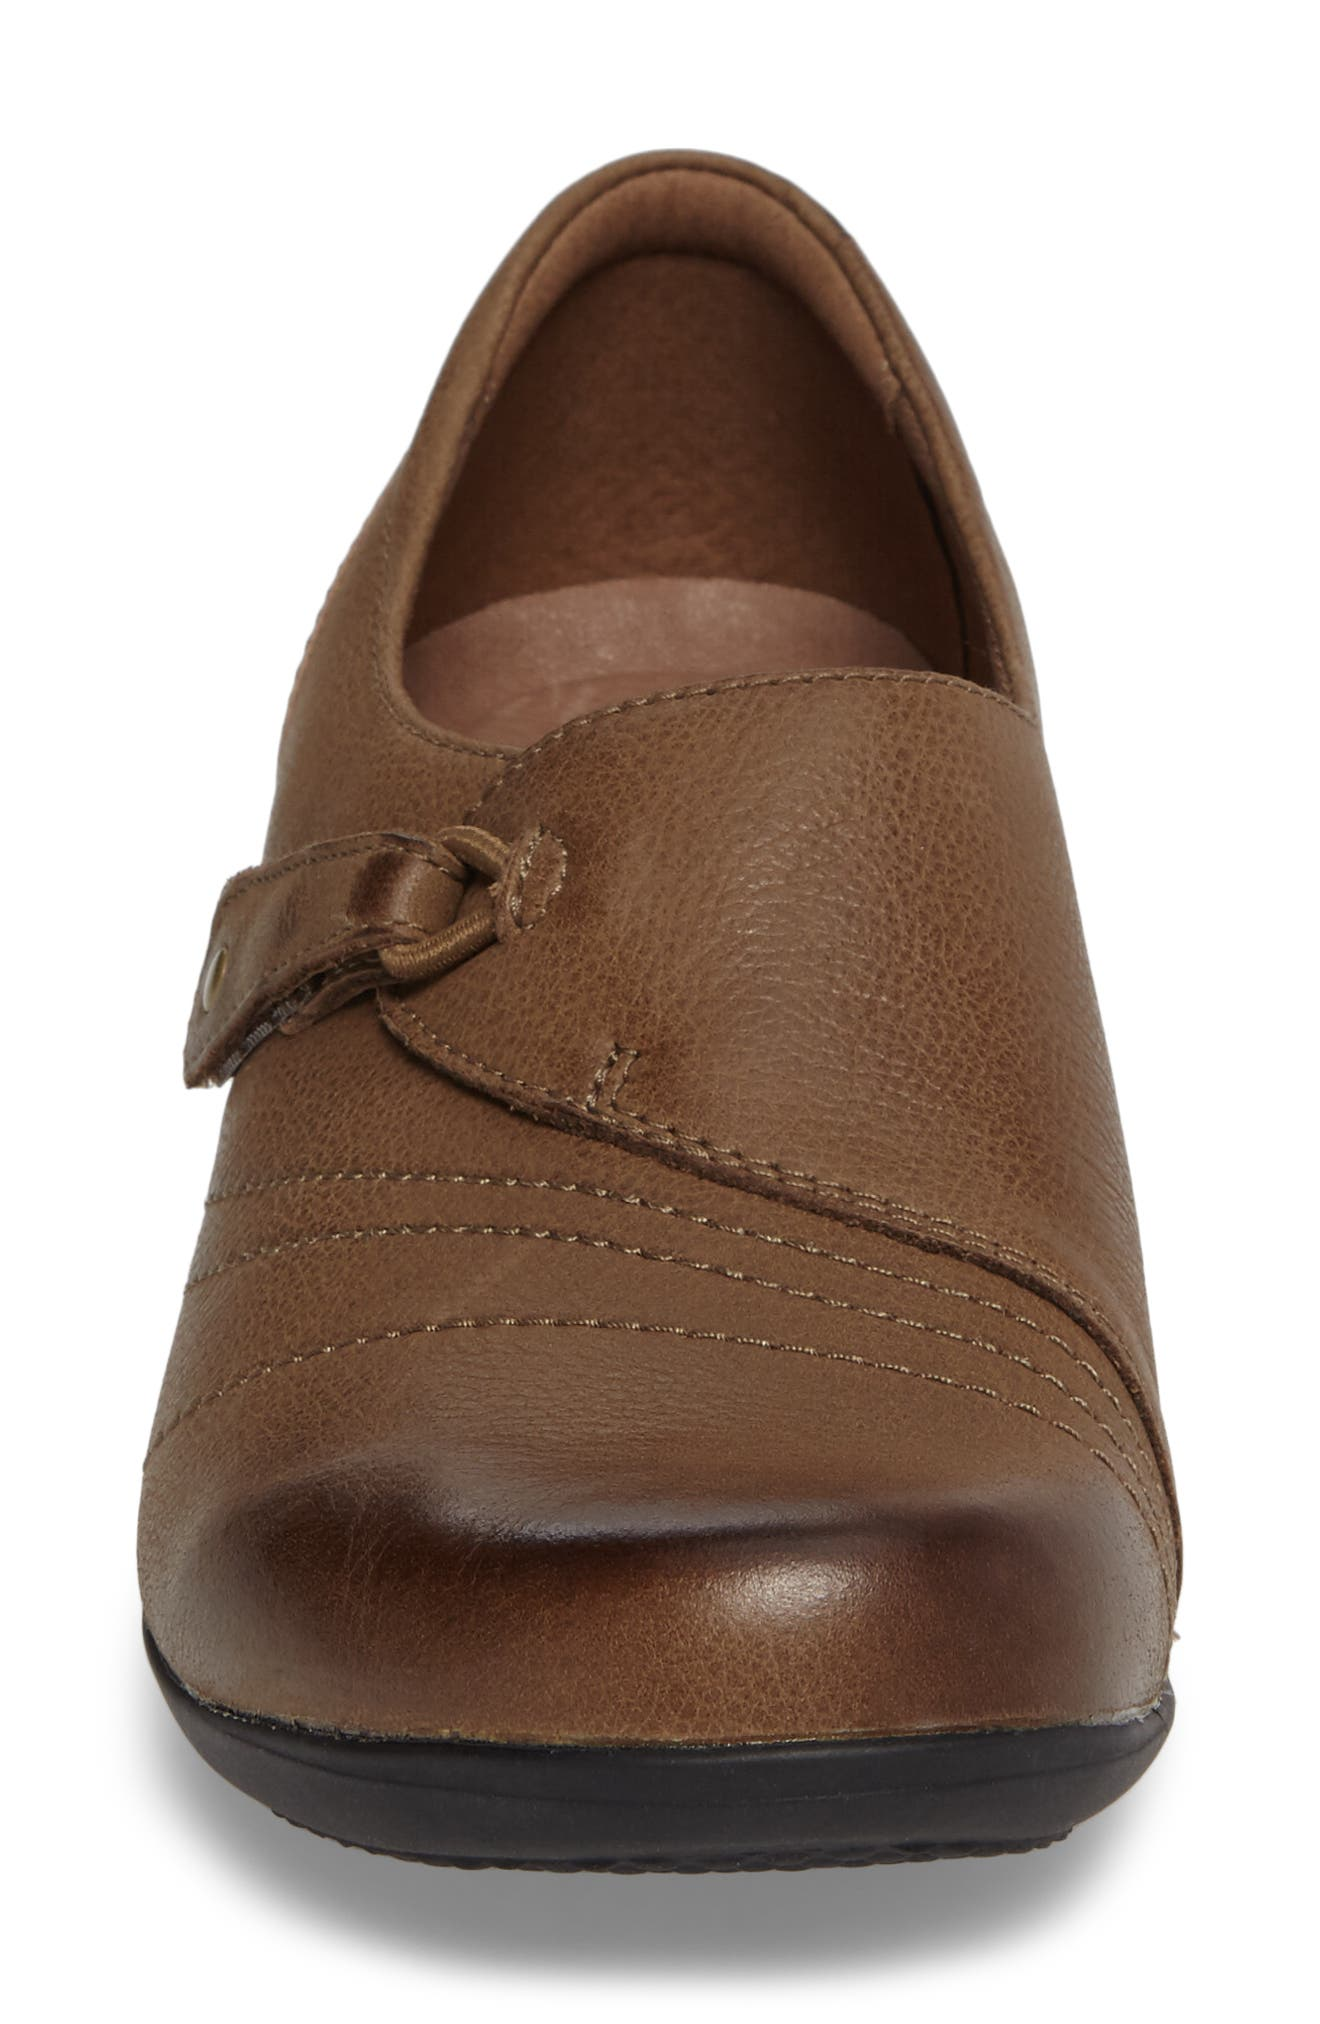 Franny Loafer,                             Alternate thumbnail 4, color,                             Taupe Burnished Nappa Leather